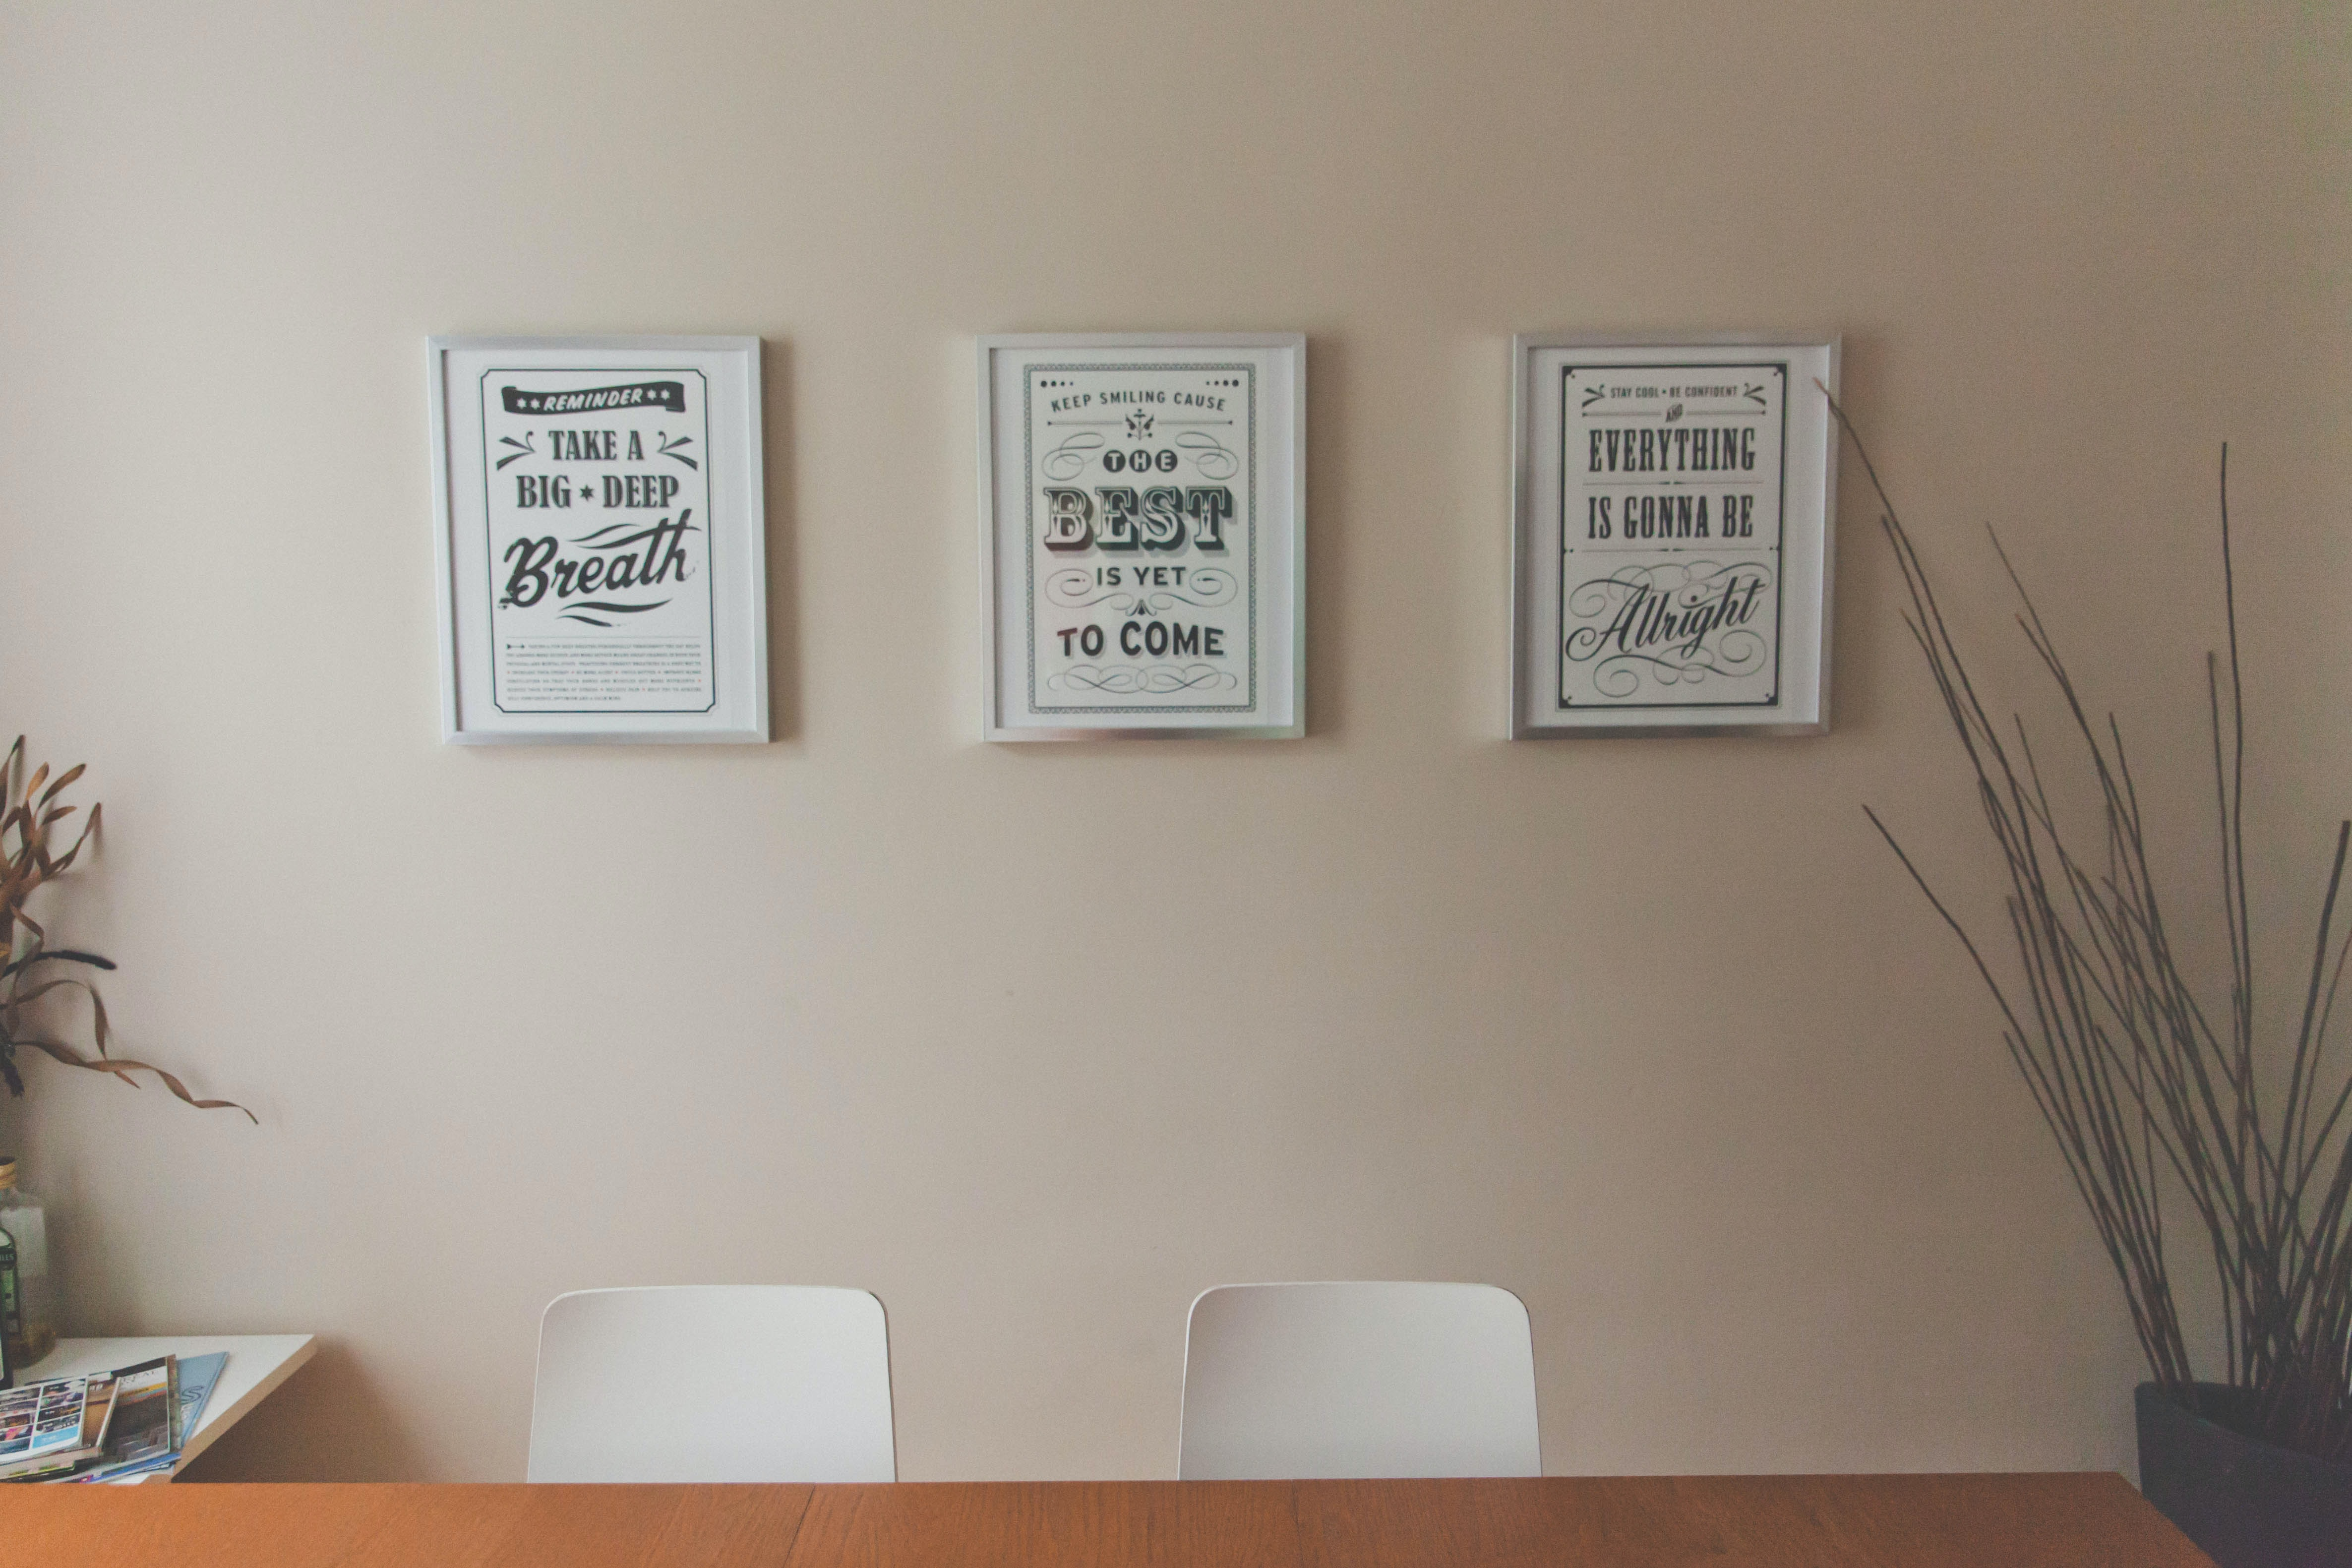 Three framed motivational posters on a wall in an office